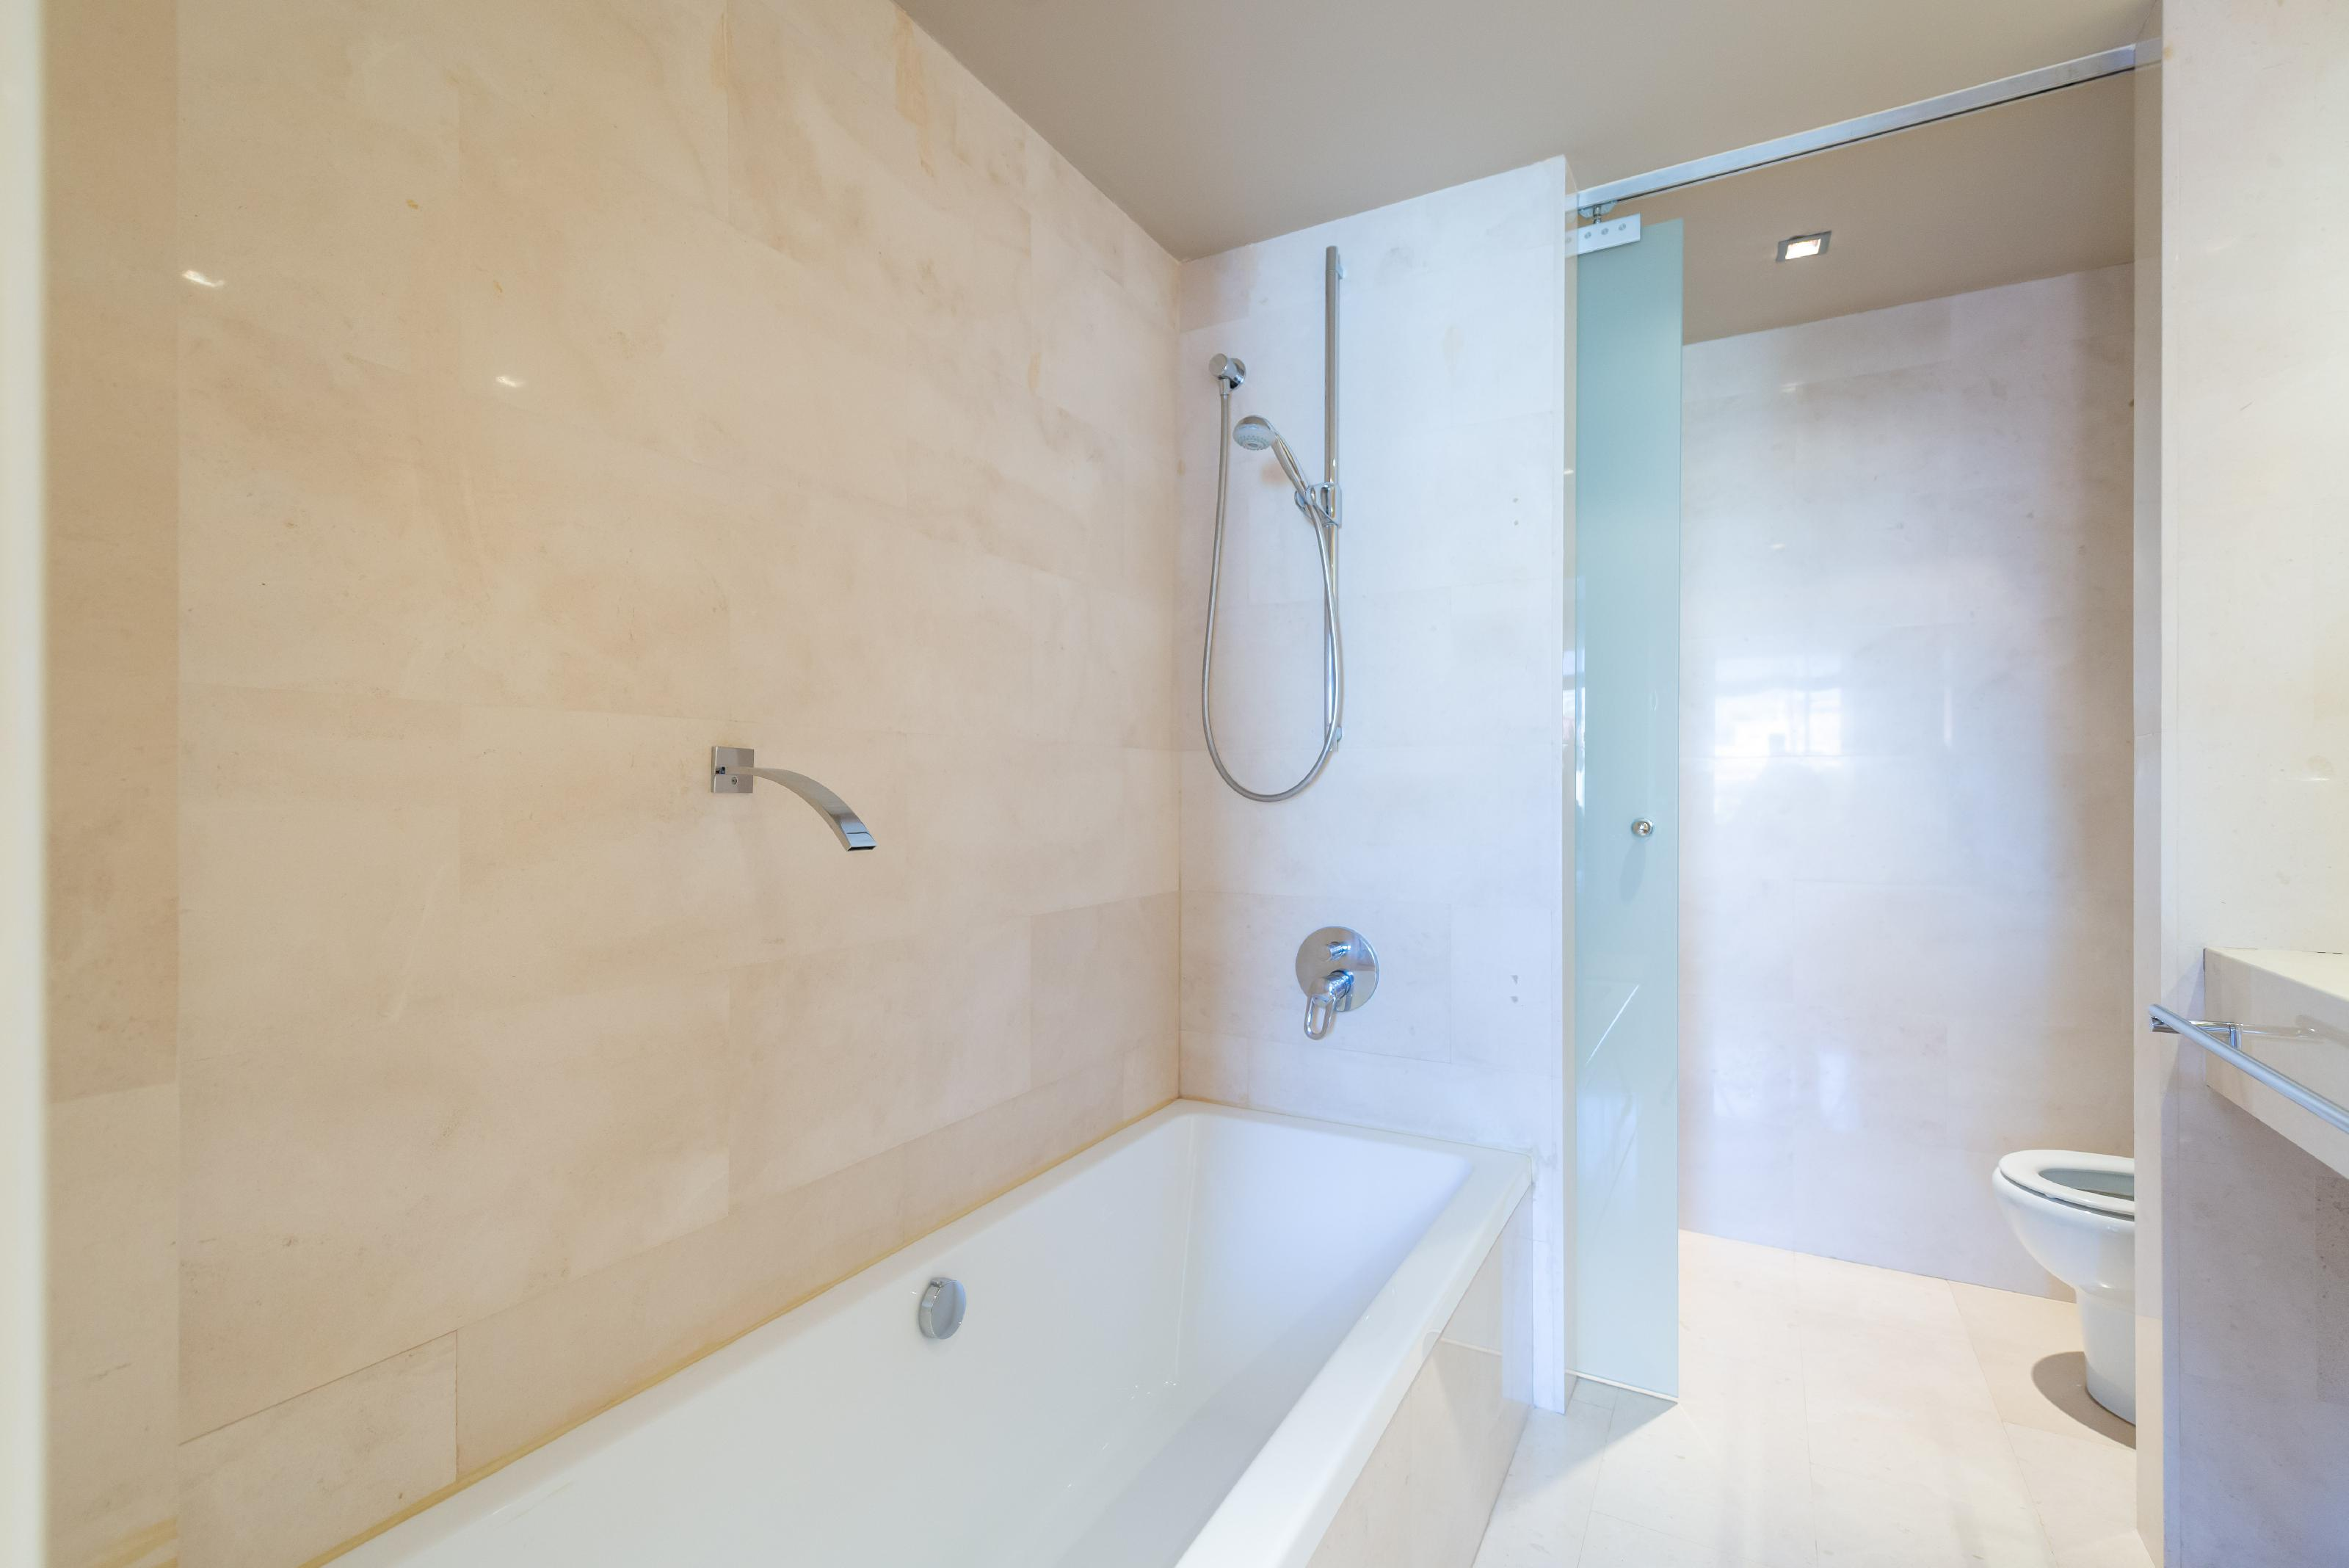 246682 Flat for sale in Gràcia, Vallcarca and Els Penitents 11